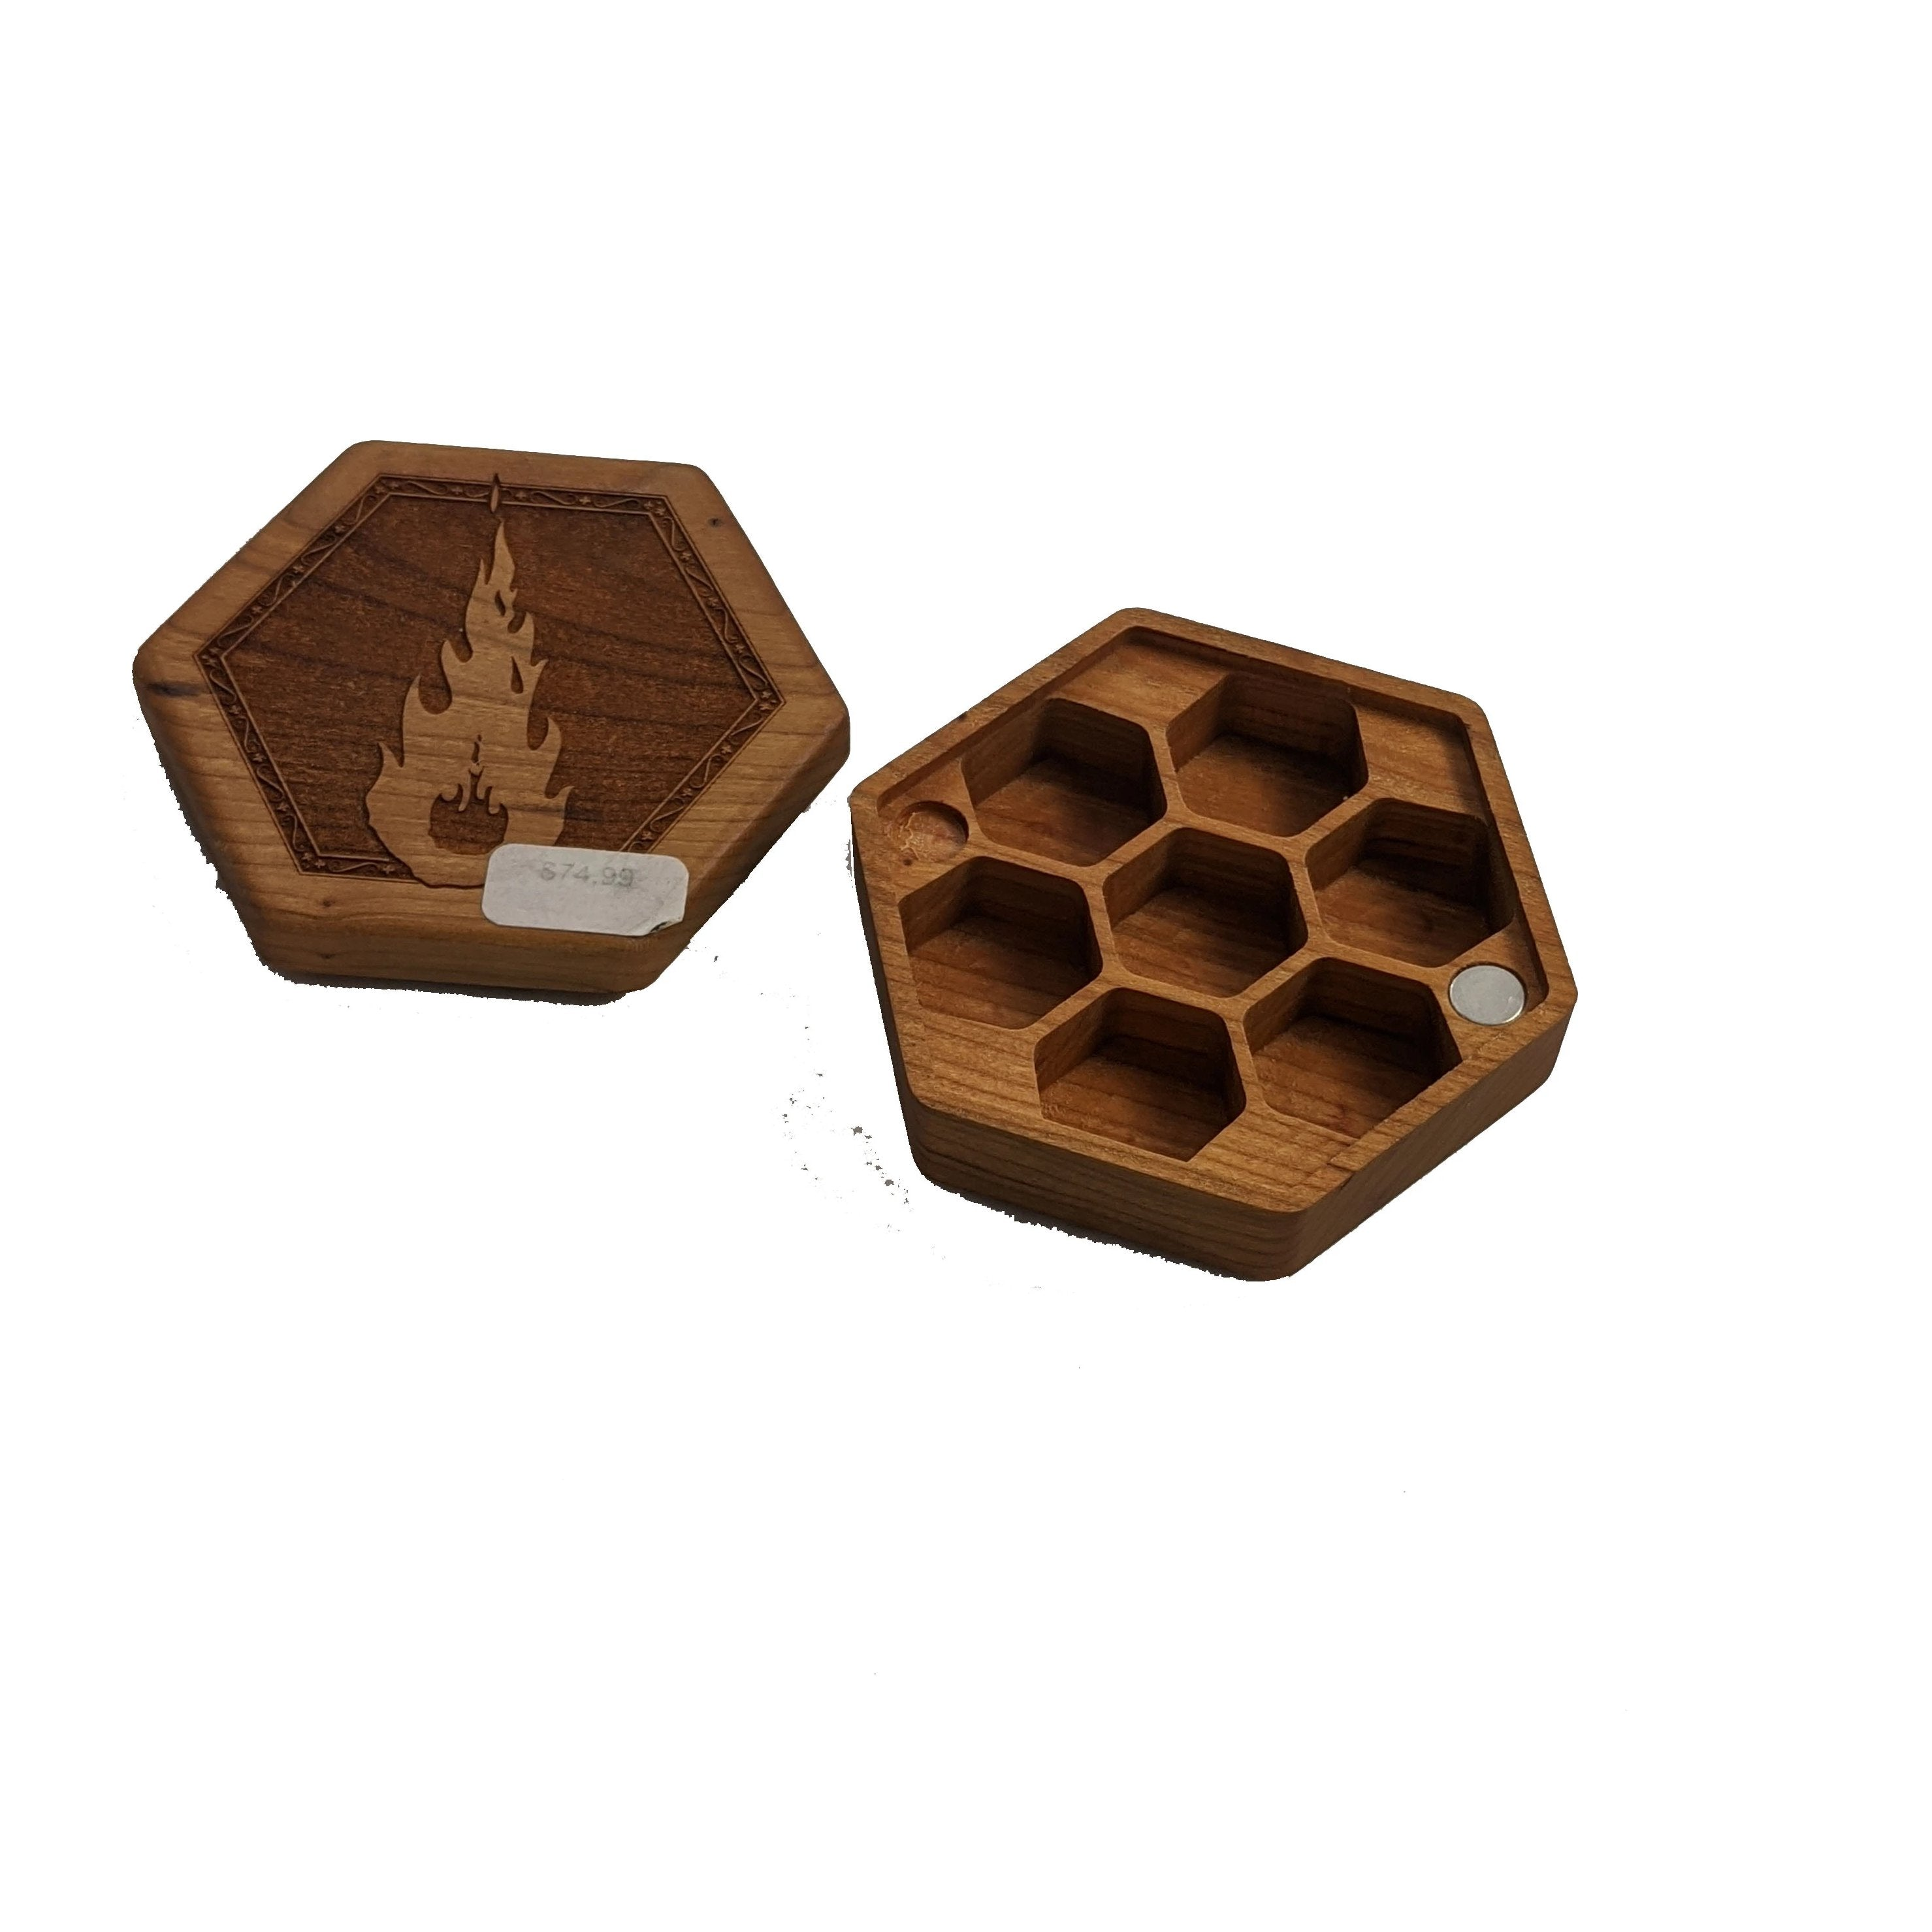 Hex Dice Boxes (various wood styles)